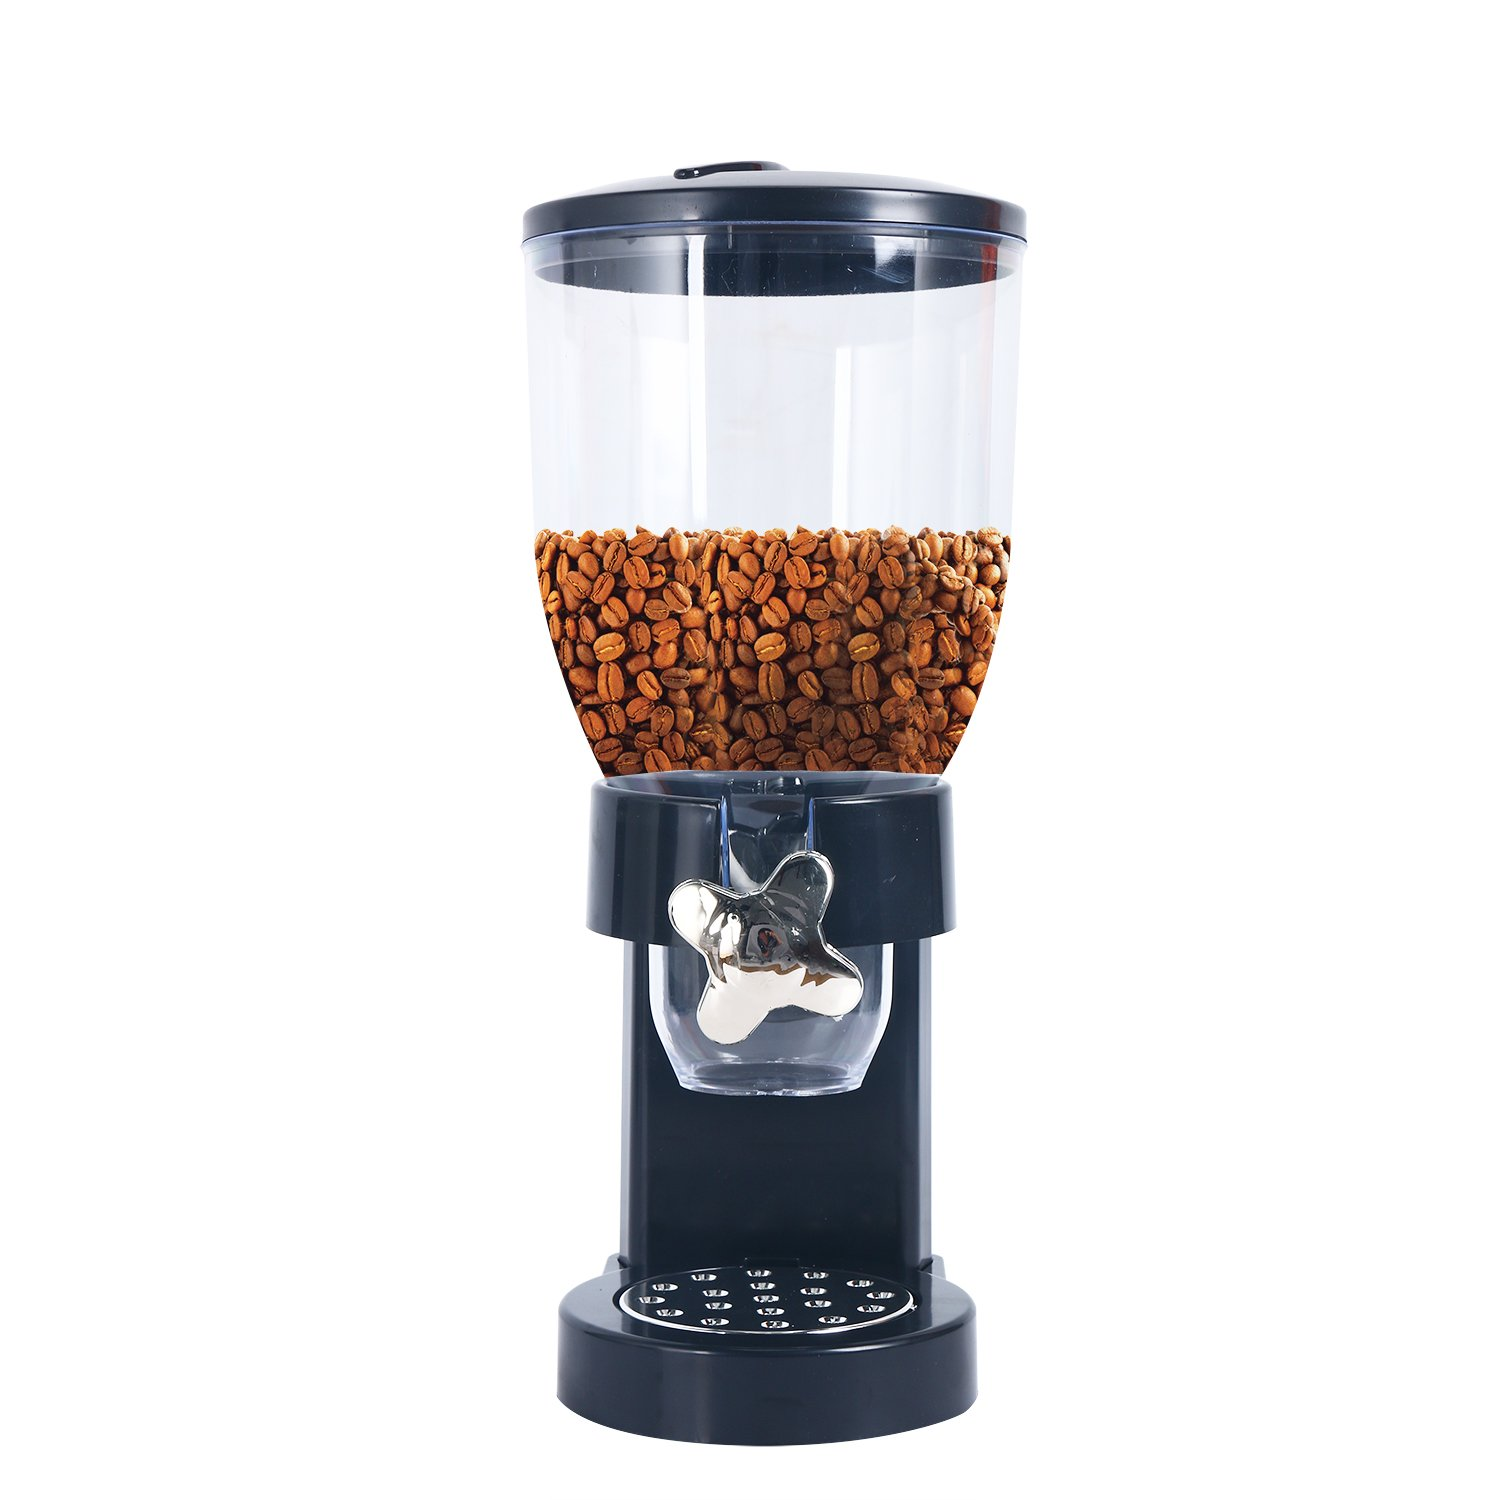 YaeKoo Indispensable Dry Food Dispenser, Dual Control Dispenser